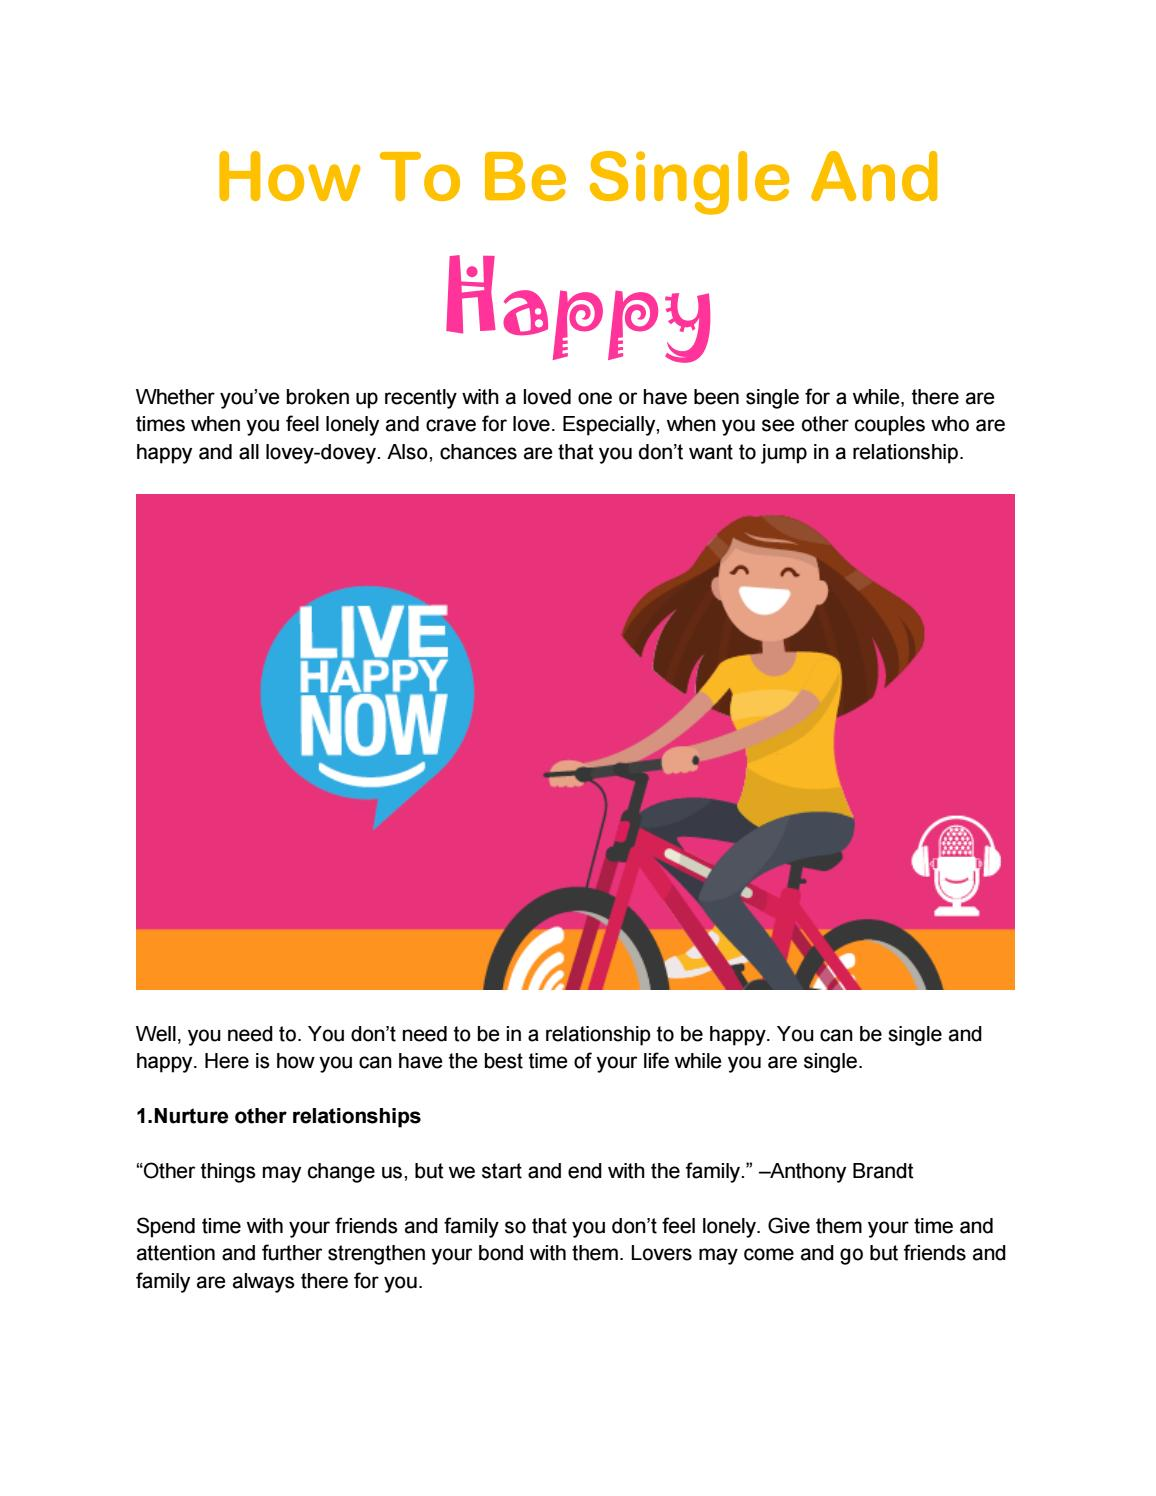 How To Be Single And Happy by Akash kumar   issuu